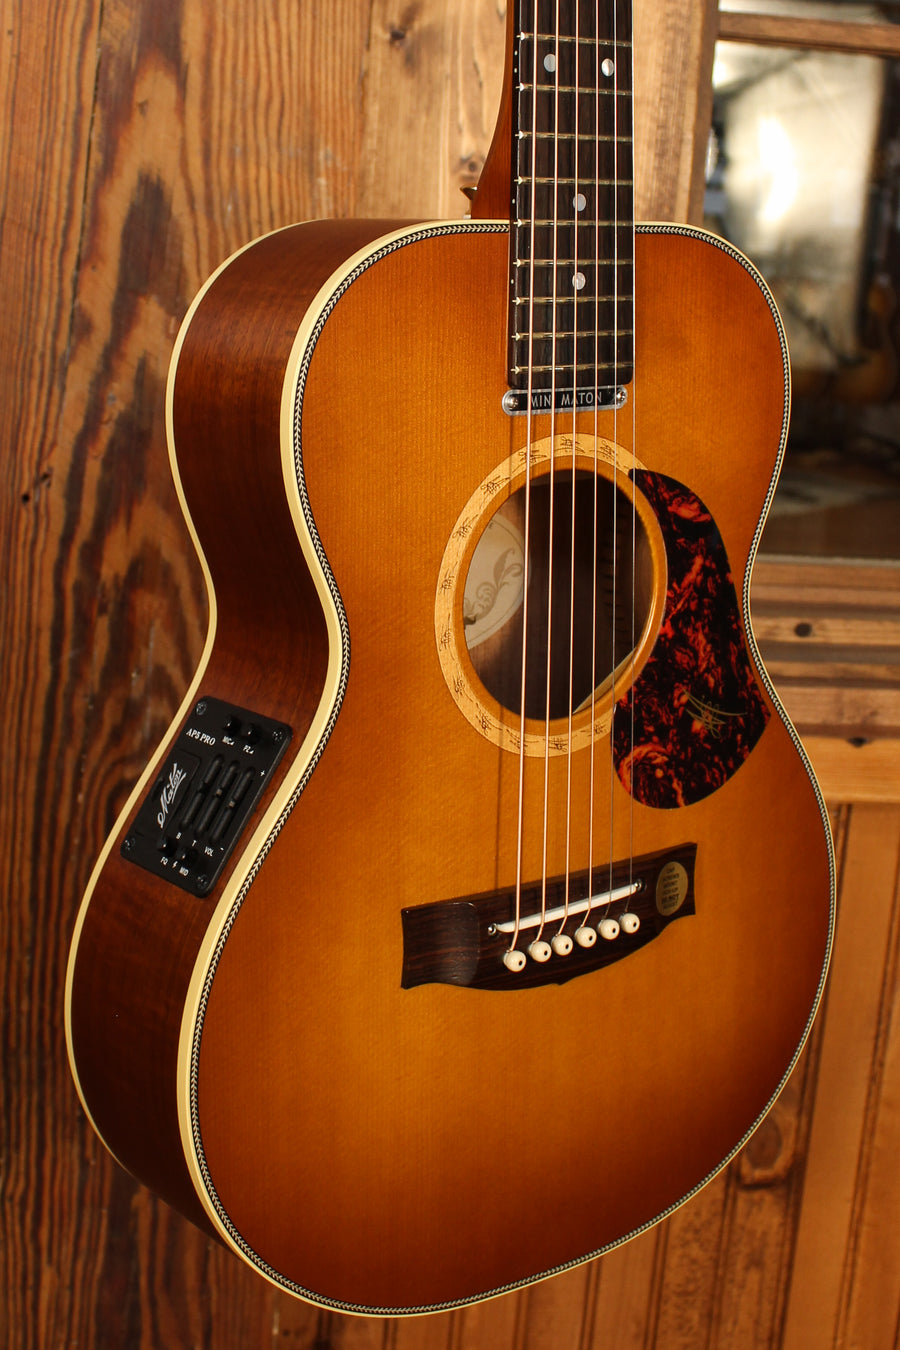 Maton EMD6 Mini Maton Diesel Sitka with Blackwood and Vintage Amber Sunburst - Shop Demo